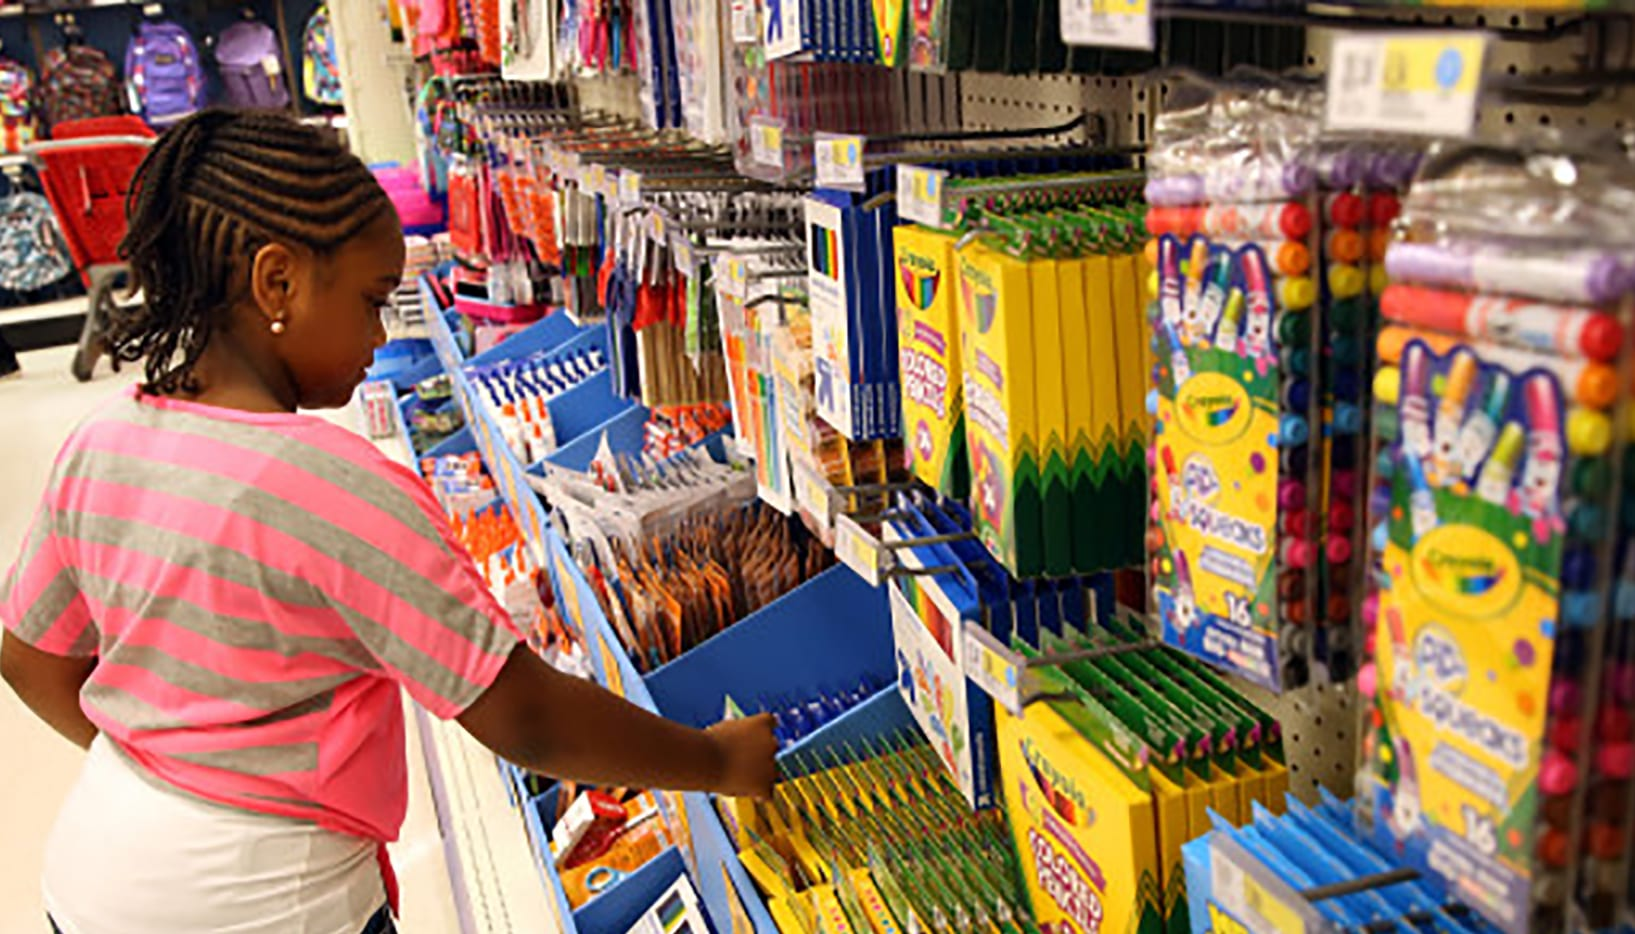 students shopping in store for school supplies